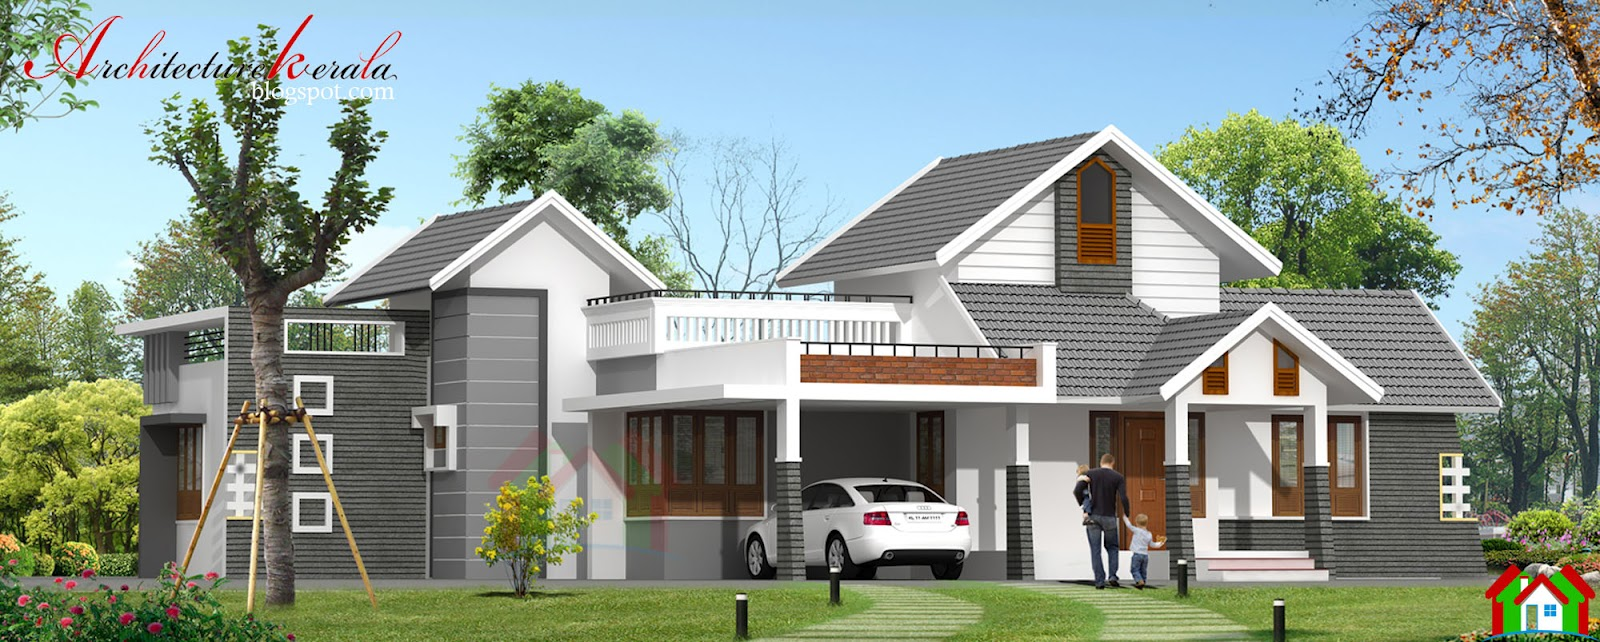 Architecture kerala single storied kerala house design for Home designs for kerala